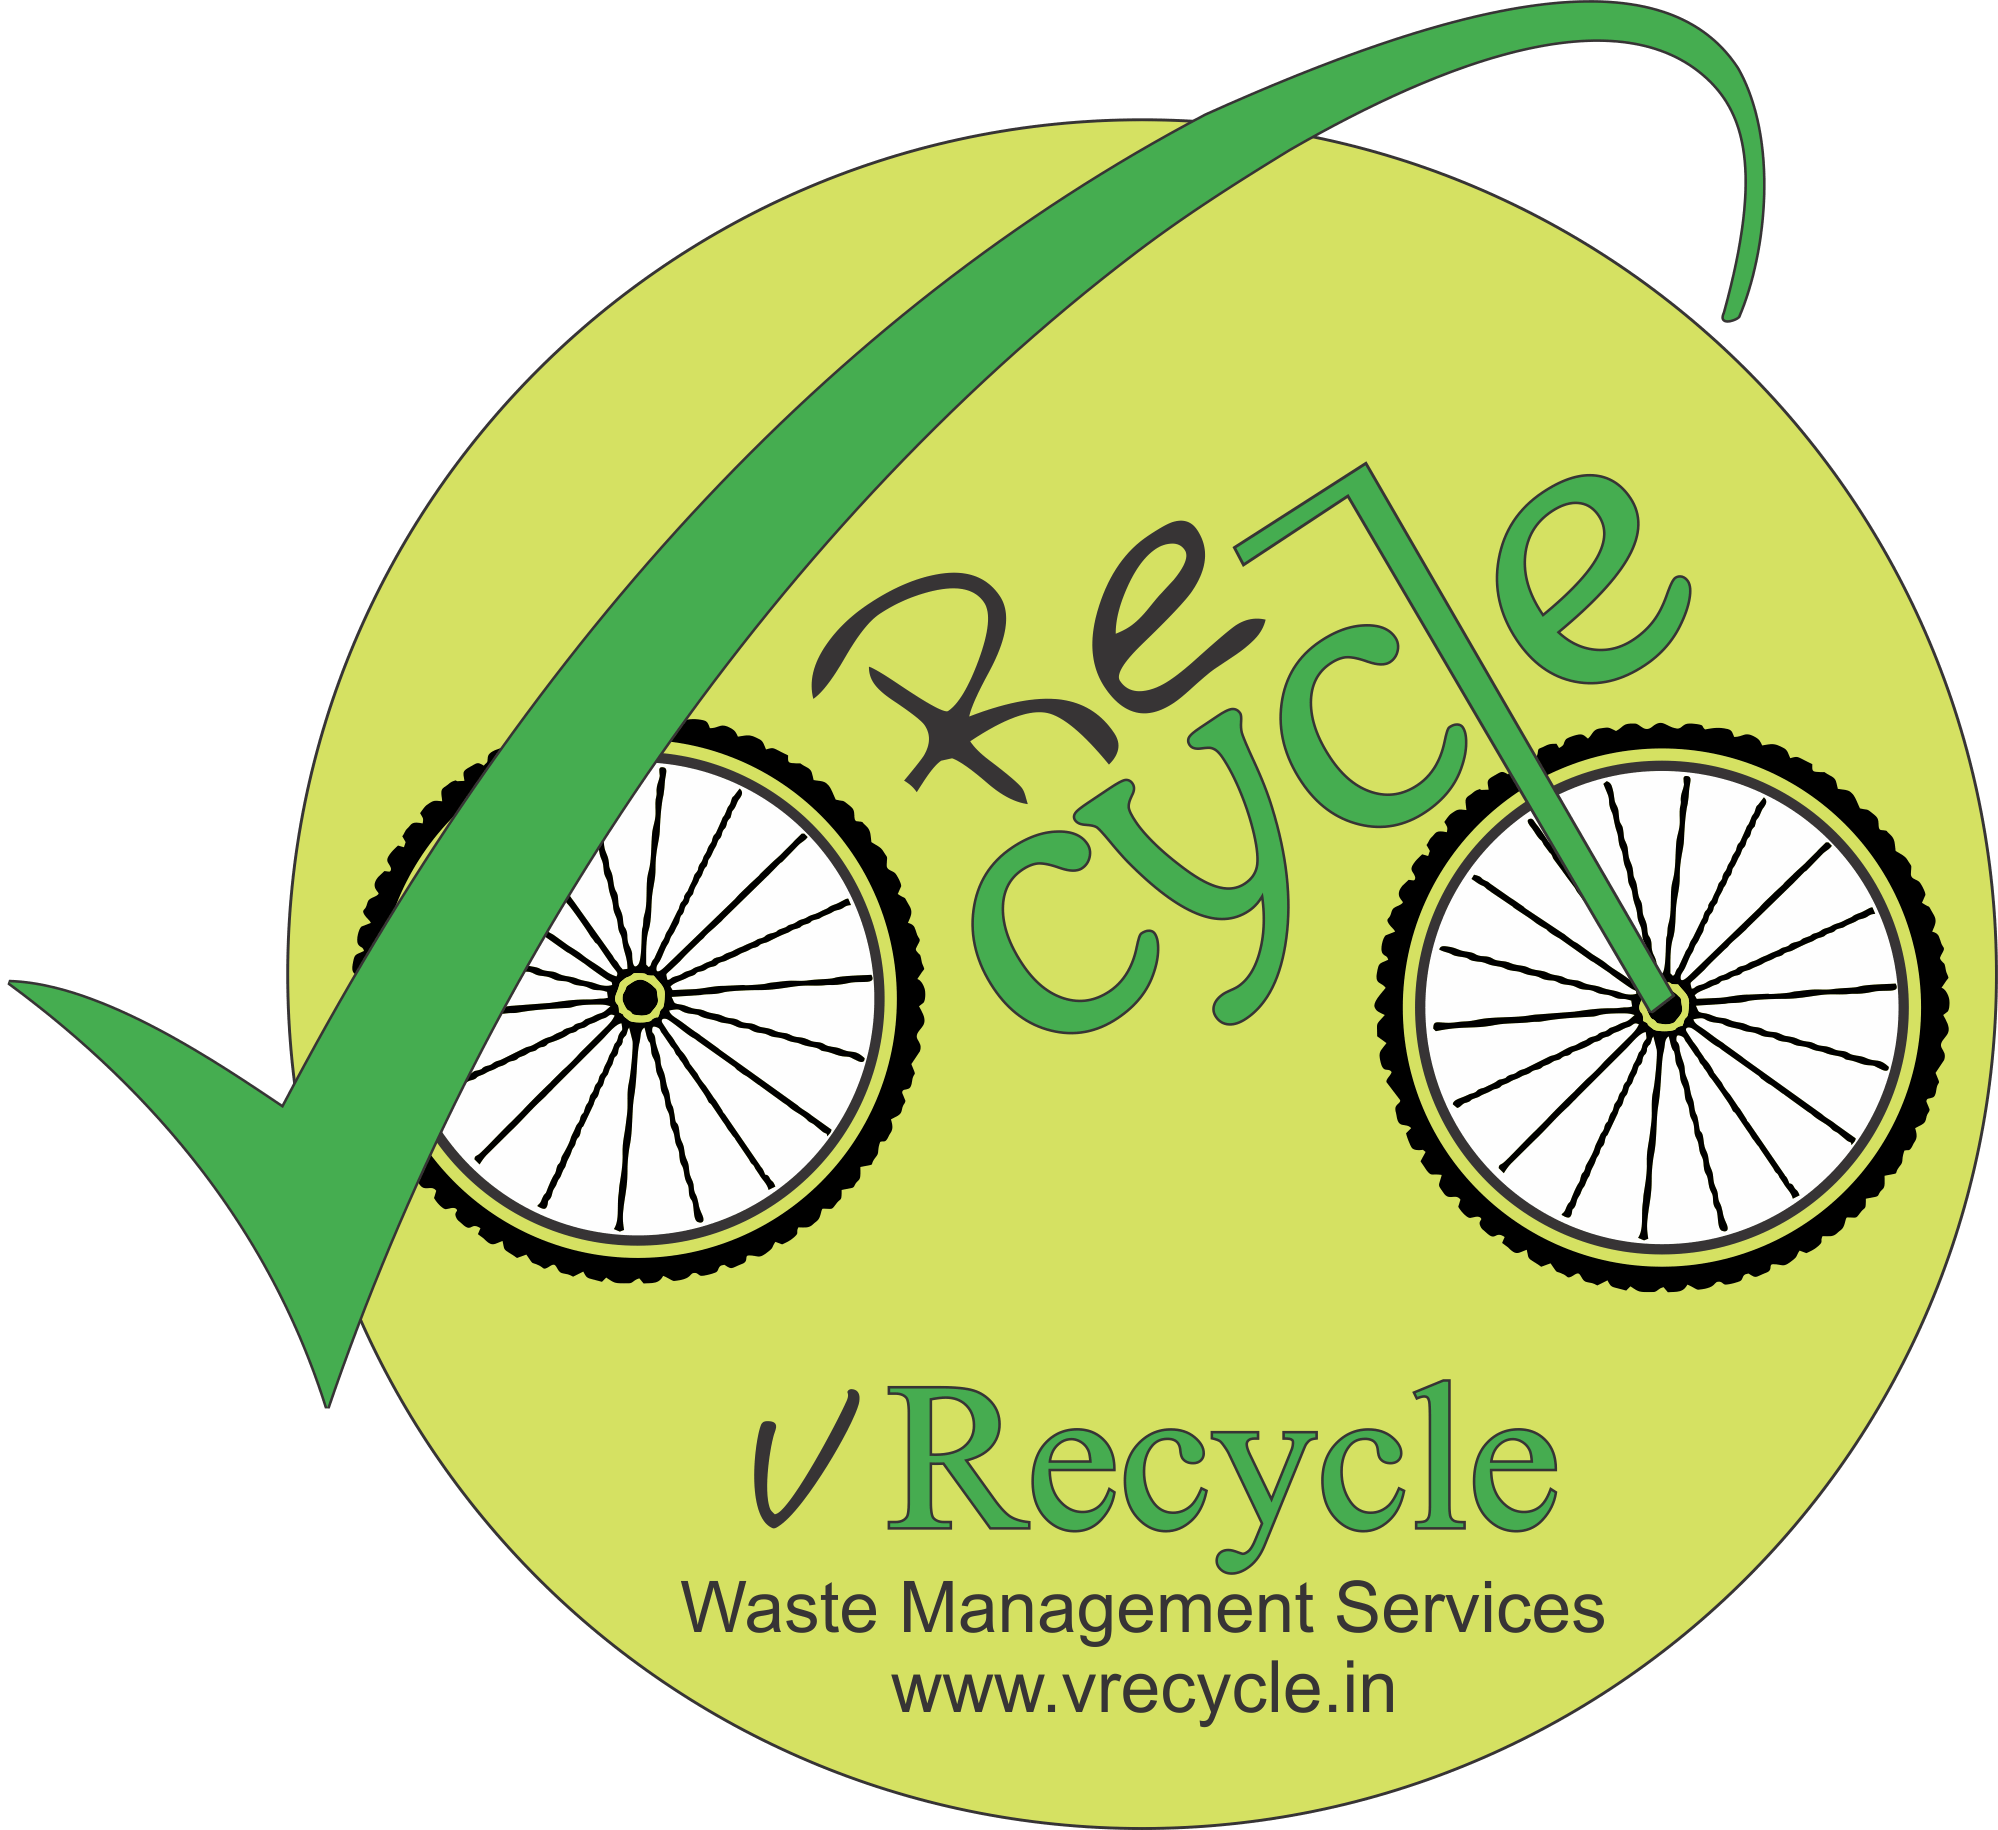 vRecycle Logo v4.0-min